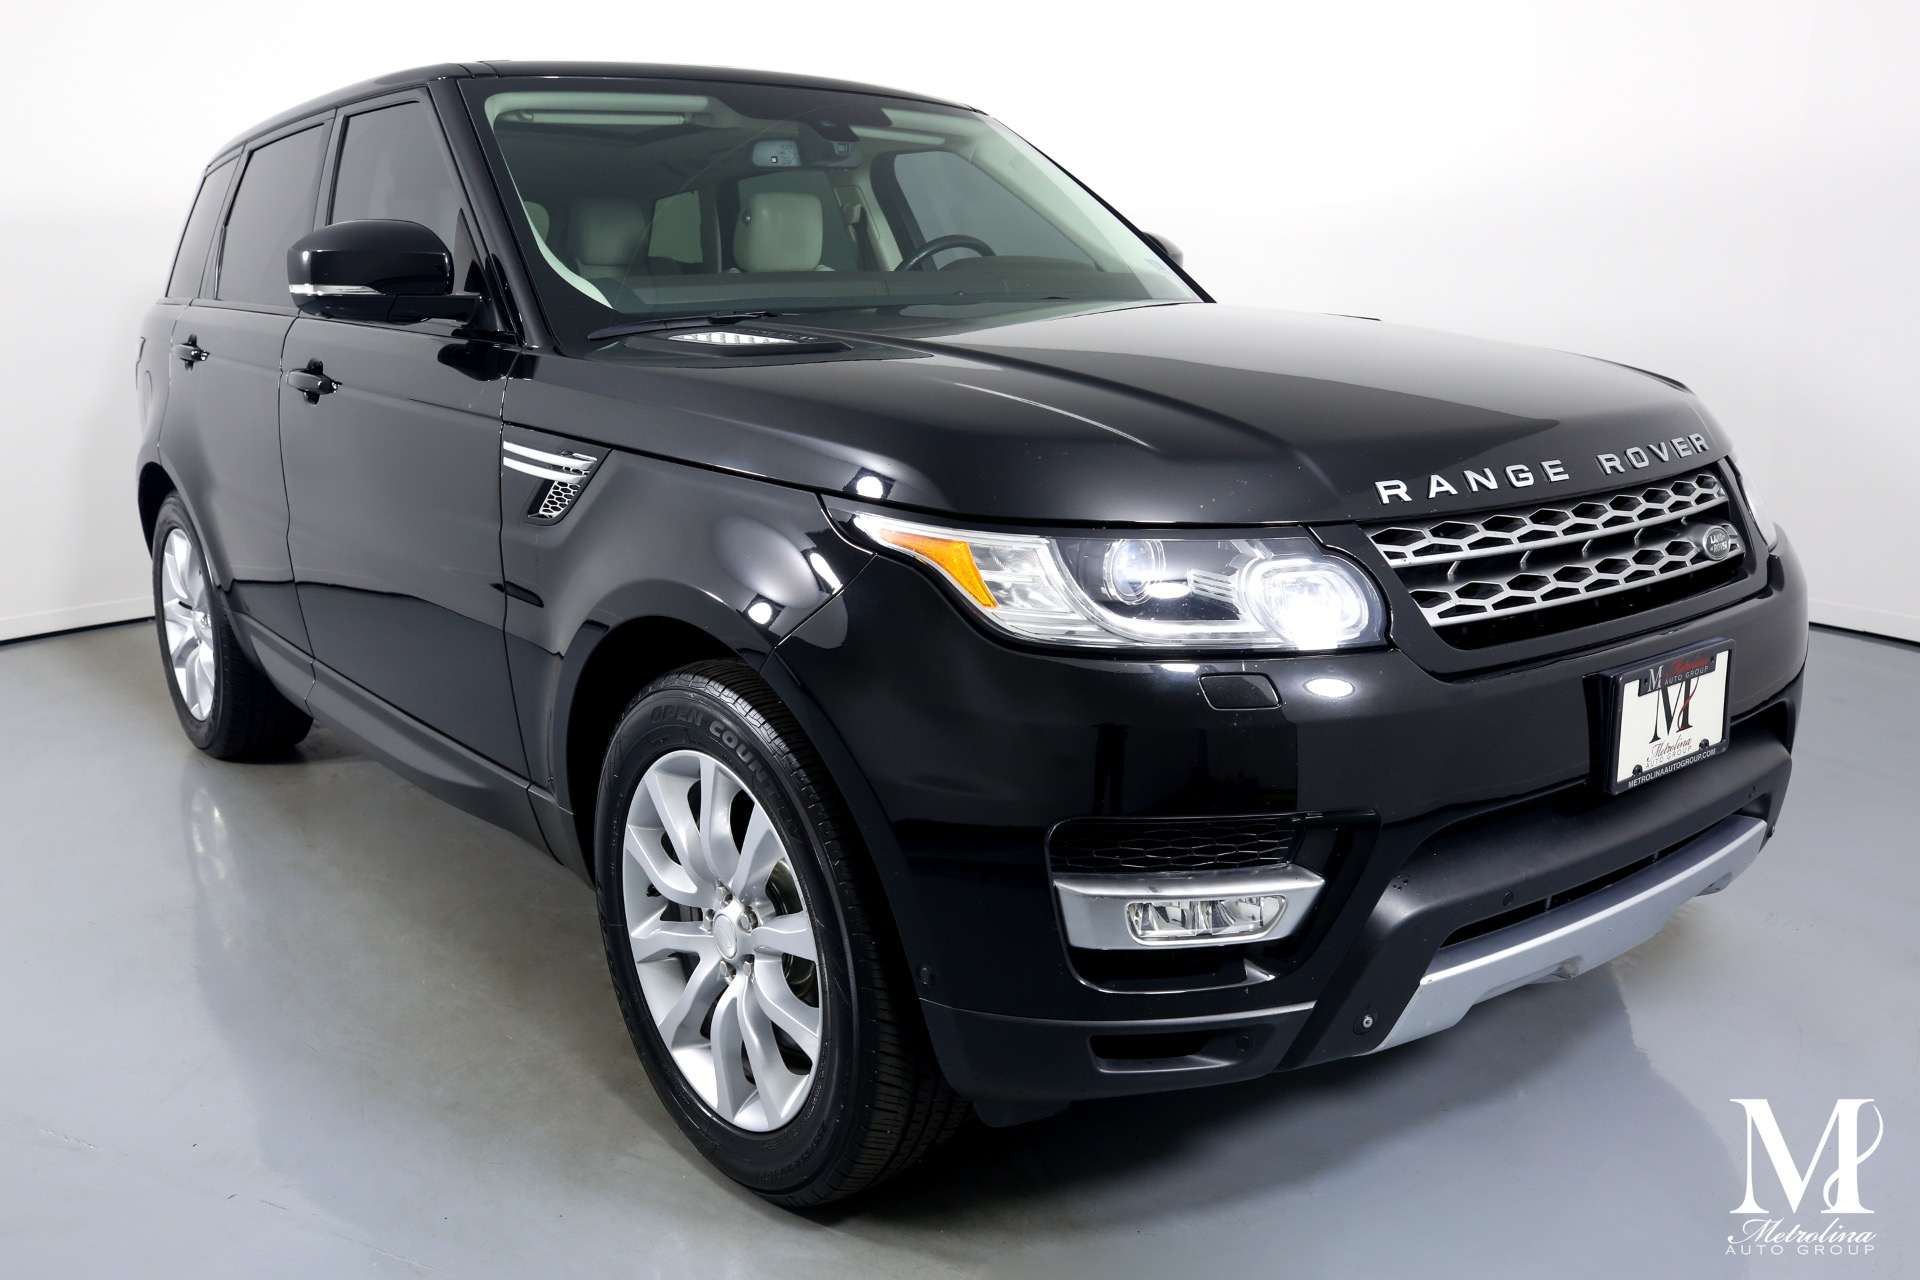 Used 2014 Land Rover Range Rover Sport Supercharged for sale $29,996 at Metrolina Auto Group in Charlotte NC 28217 - 2